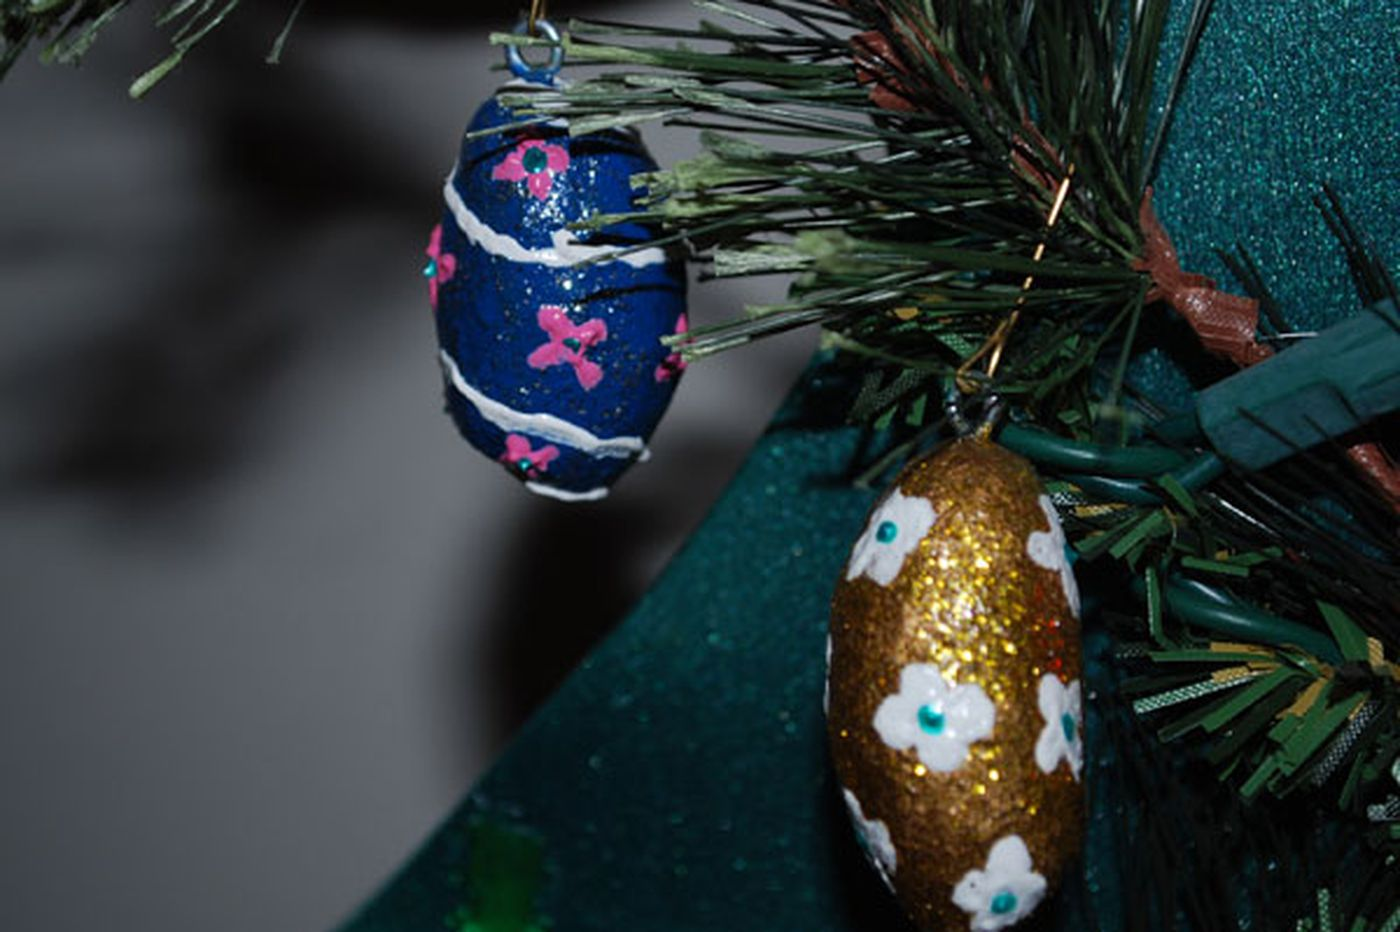 Christmas tree decorations with a twist of moose droppings